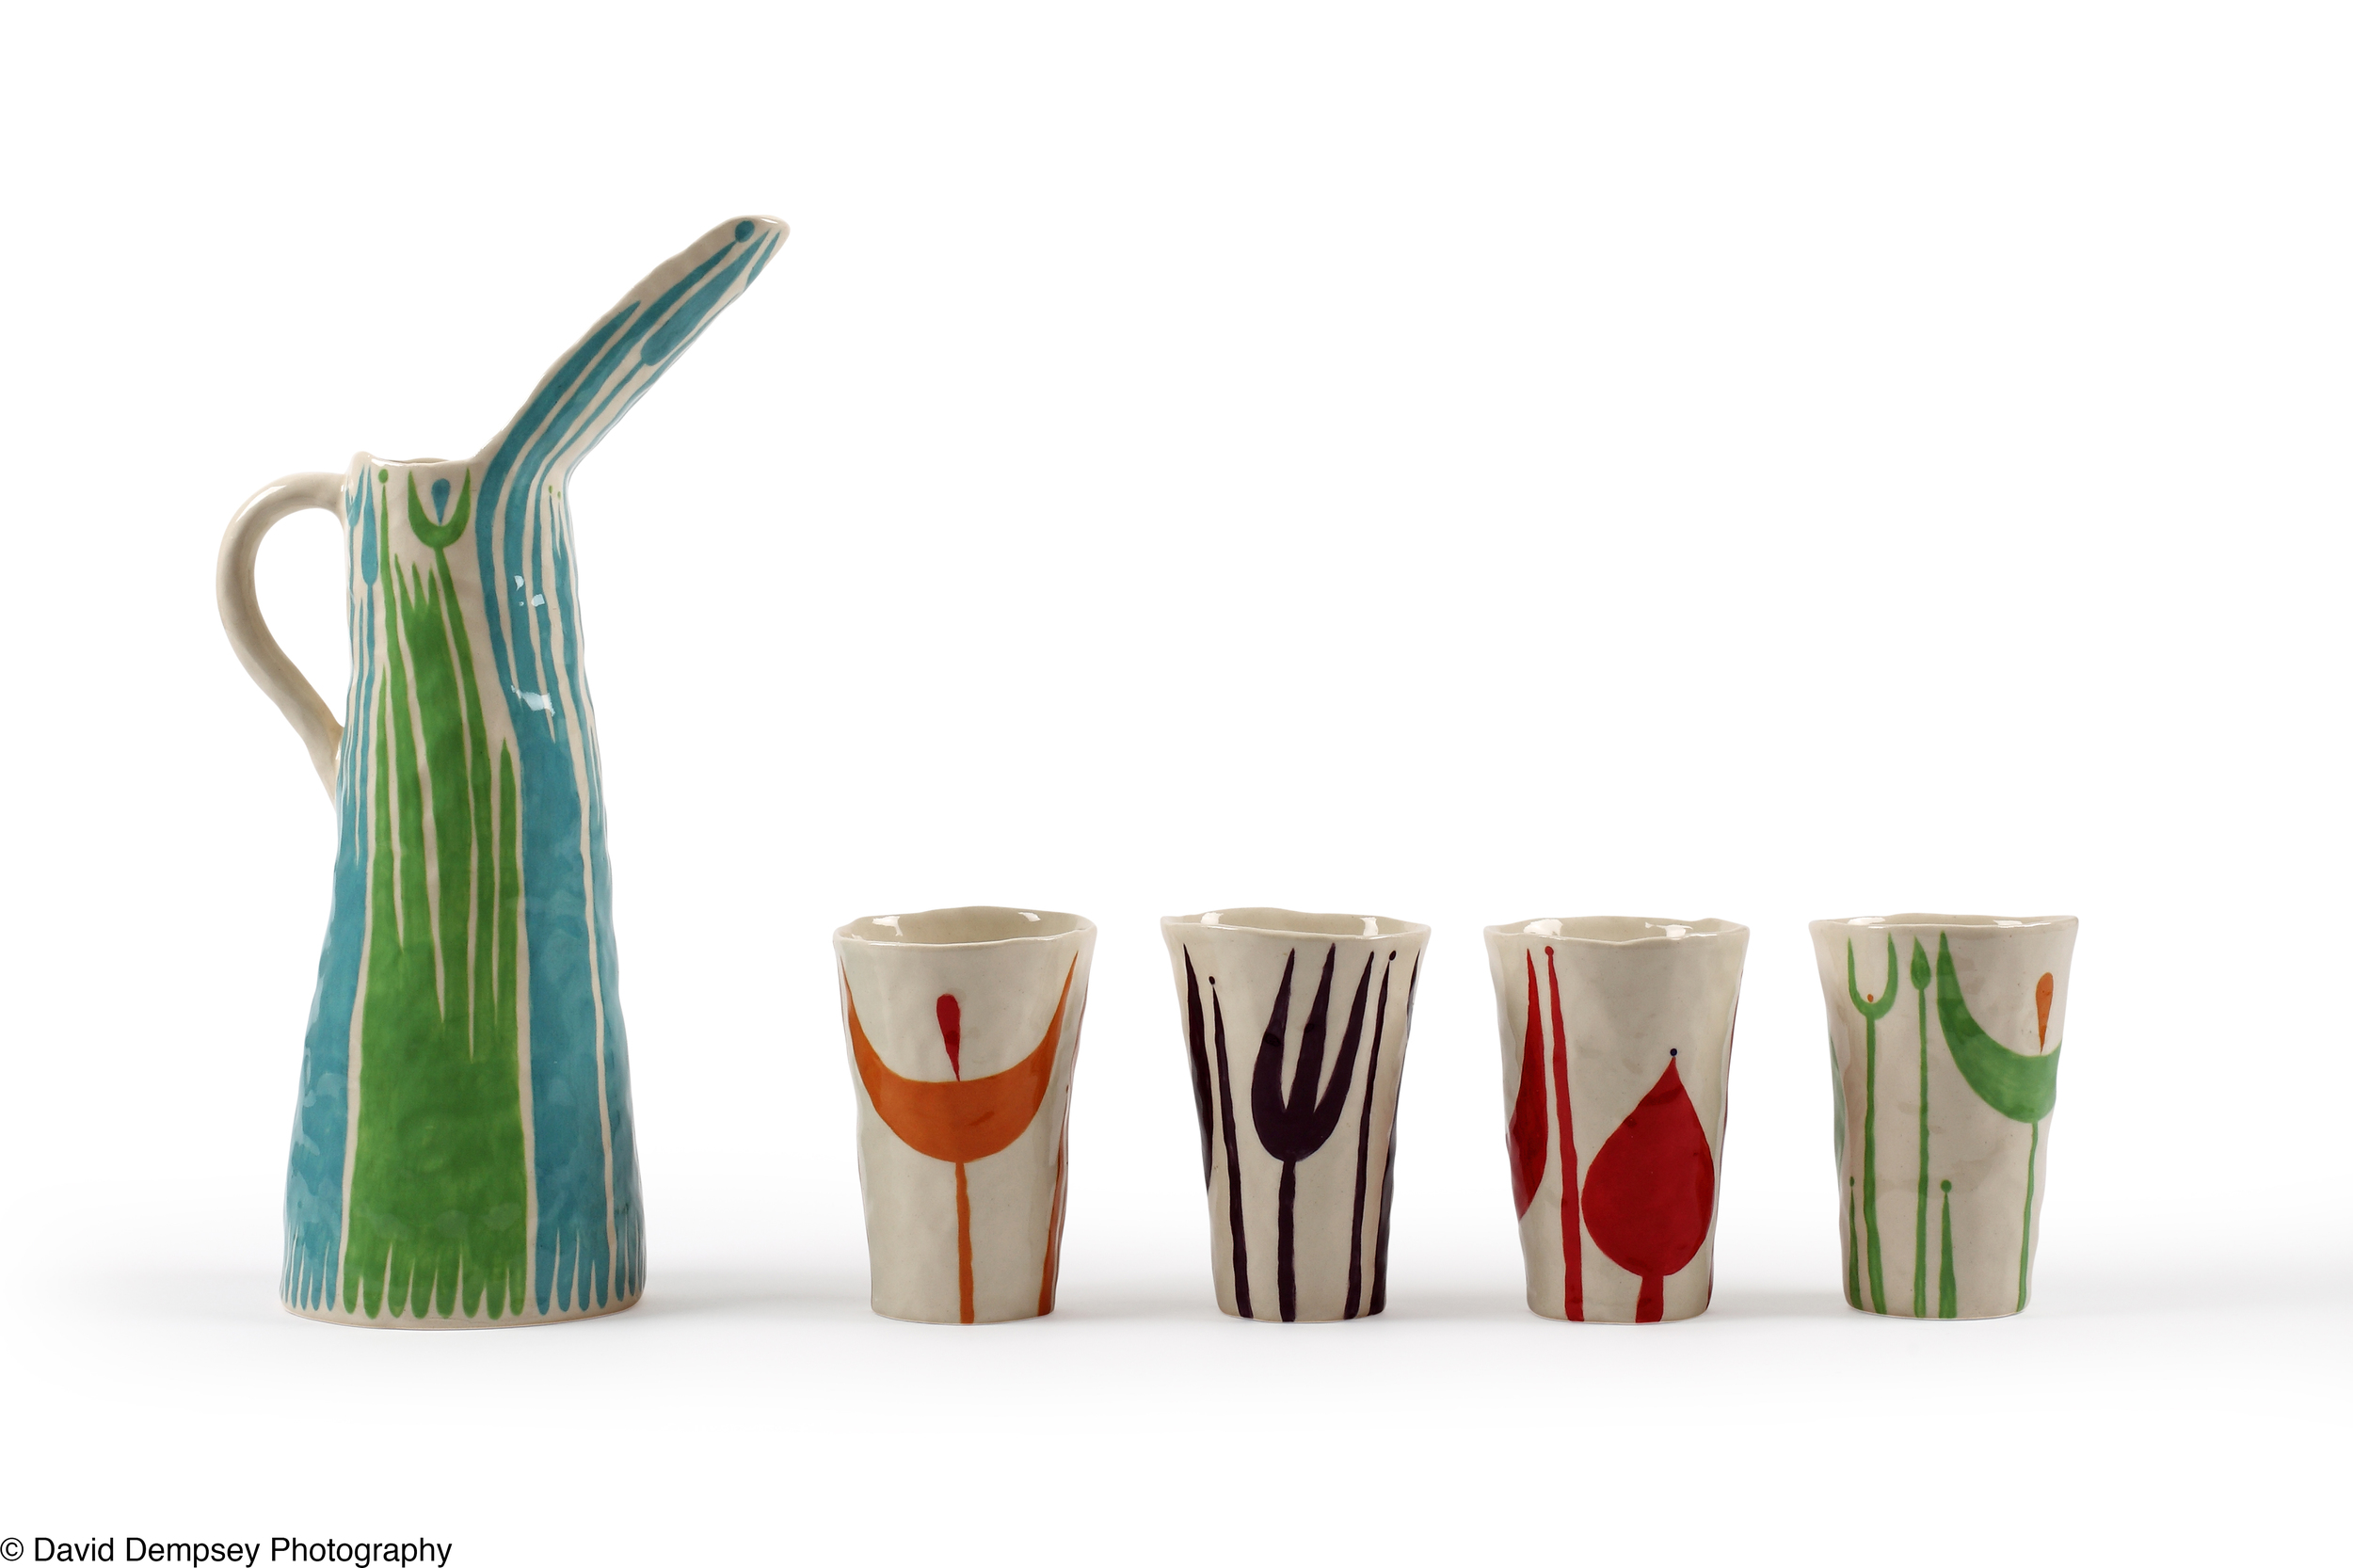 Drinking vessels & jug by Andrew Ludick